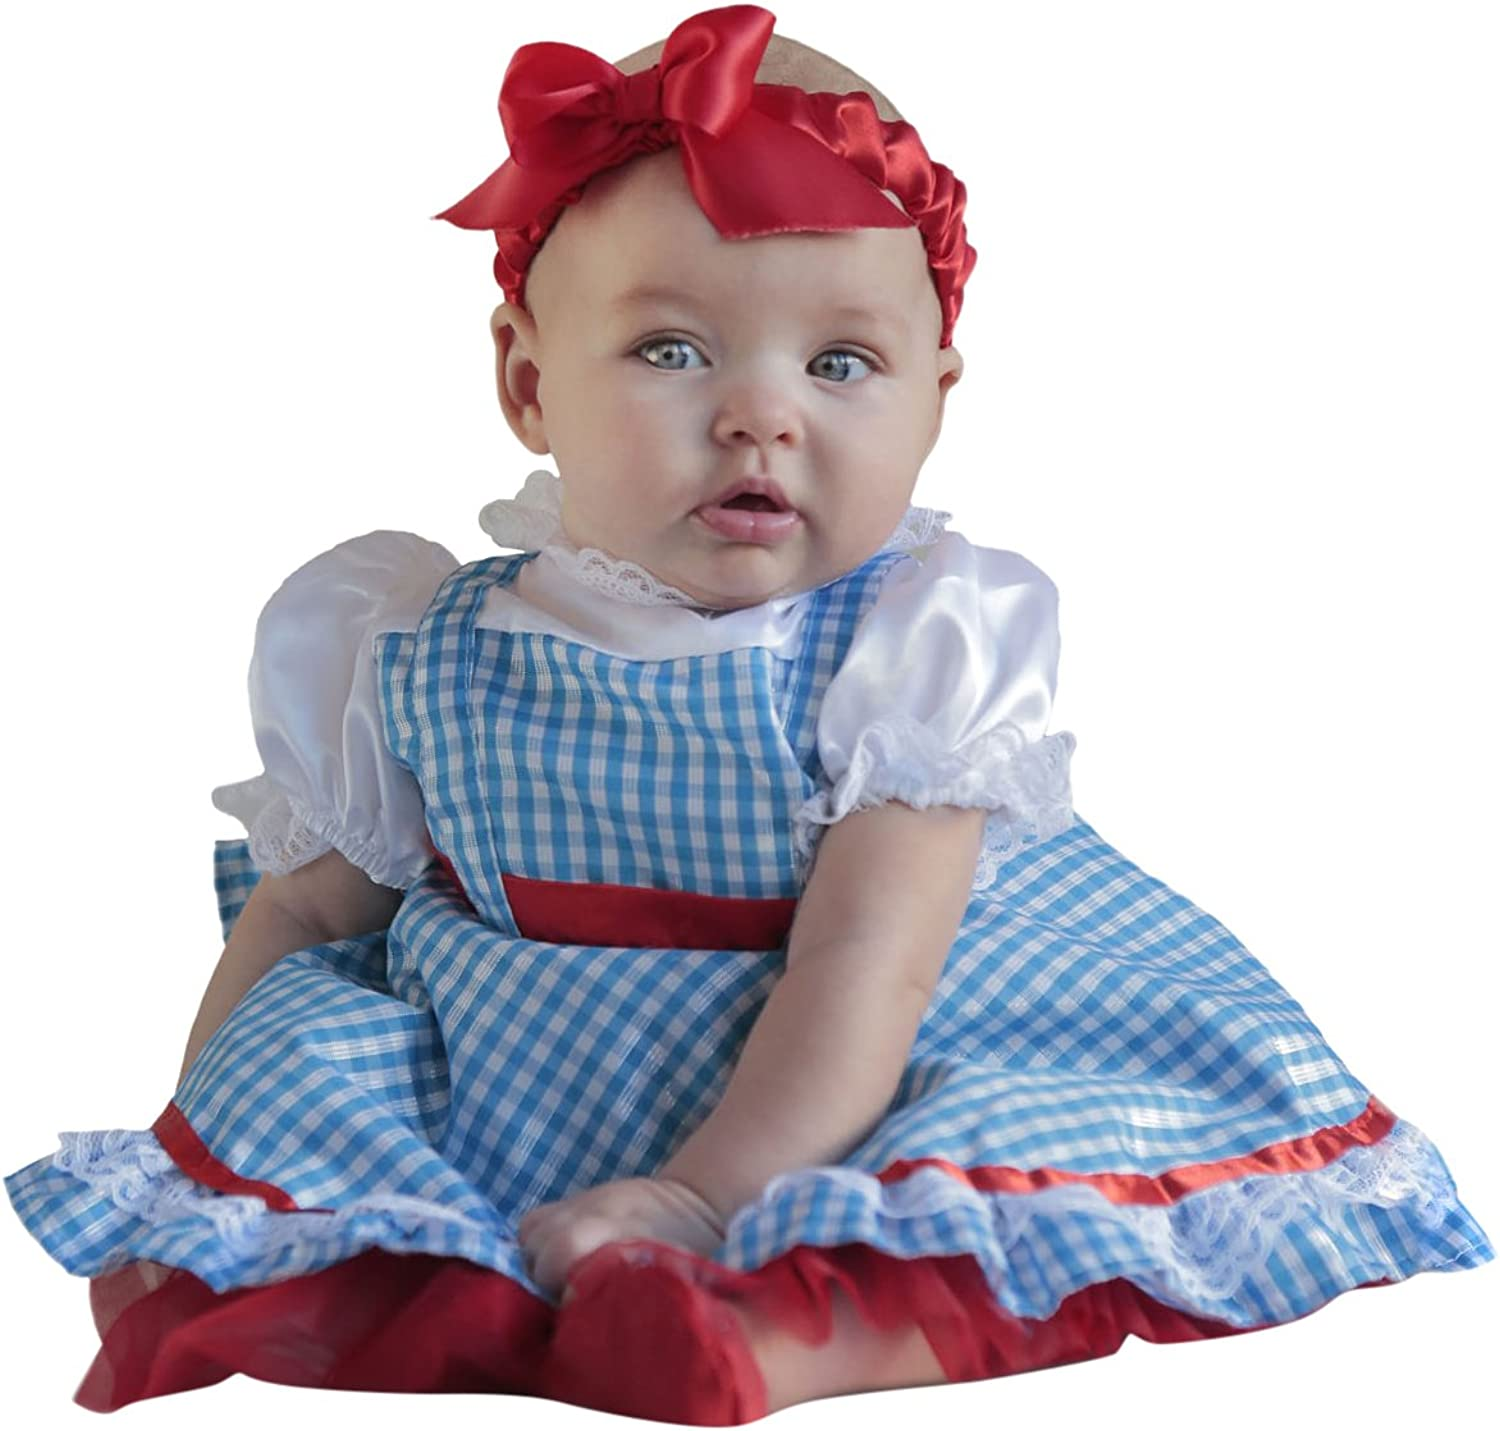 Princess Paradise The Wizard of Oz  Dgoldthy  0  3 months